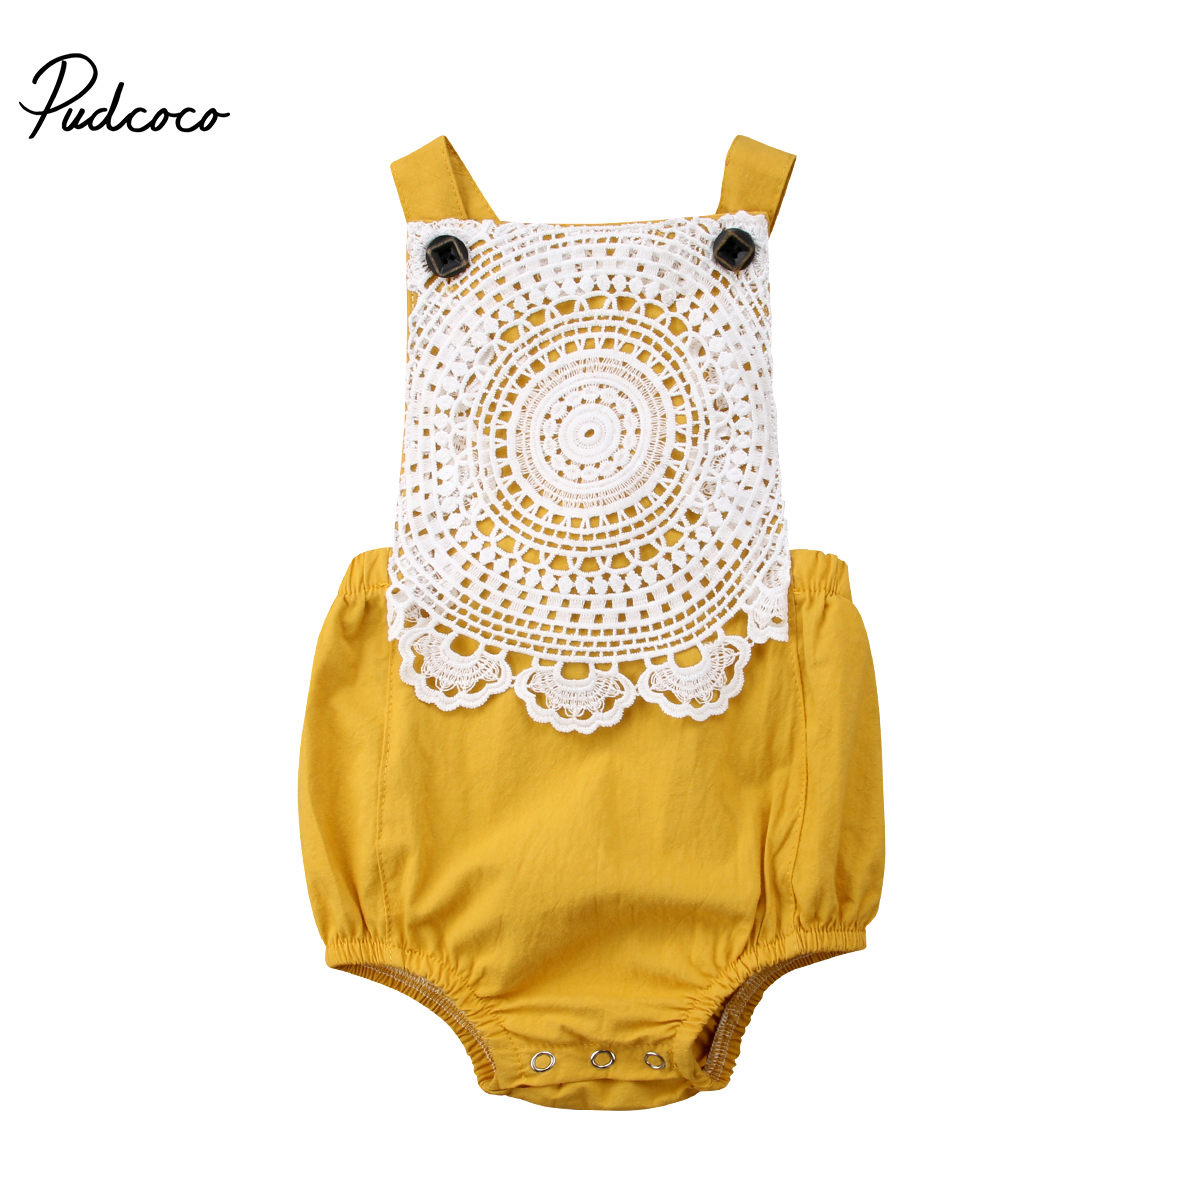 Pudcoco Lovely Newborn Baby Girl Clothes Lace Backless Romper Jumpsuit Cotton One-Piece Summer Girls Clothing adorable newborn baby girls infant lace sleeveless romper v neck backless jumpsuit clothes outfit sunsuit set